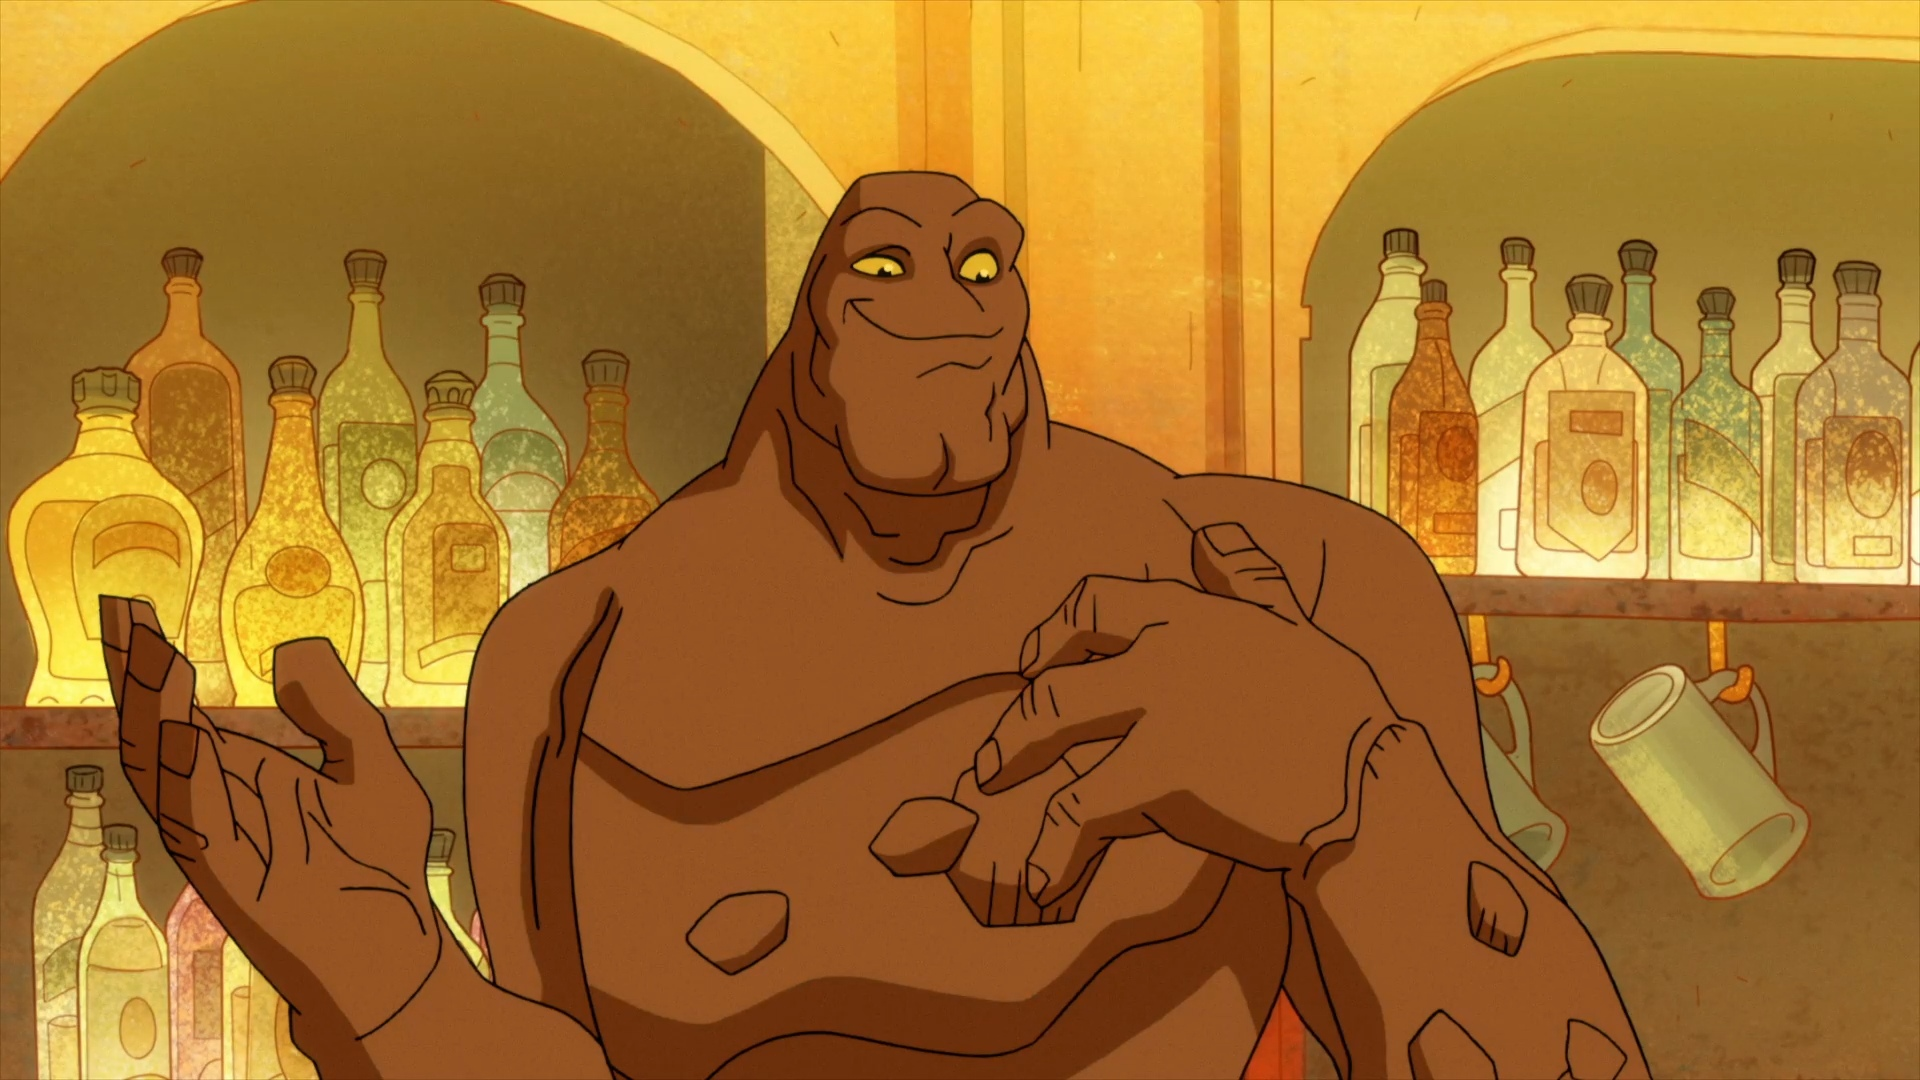 Clayface (Harley Quinn TV Series)